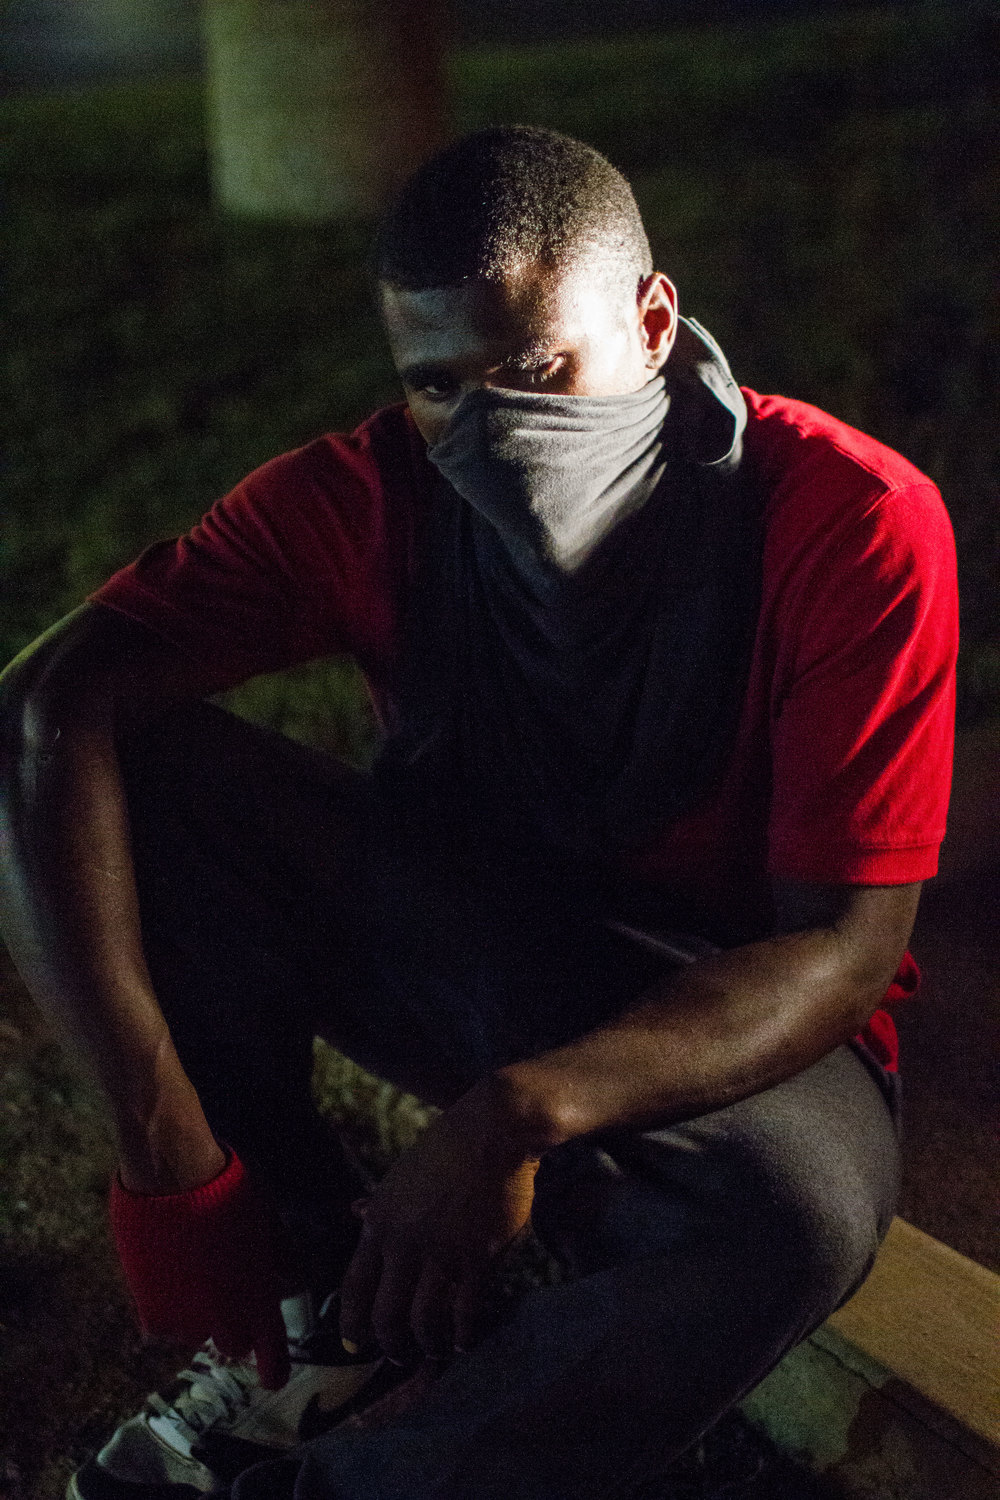 A protester covers his face with a bandana in Ferguson, Mo., after the police killing of unarmed Michael Brown. (Dave Gershgorn)